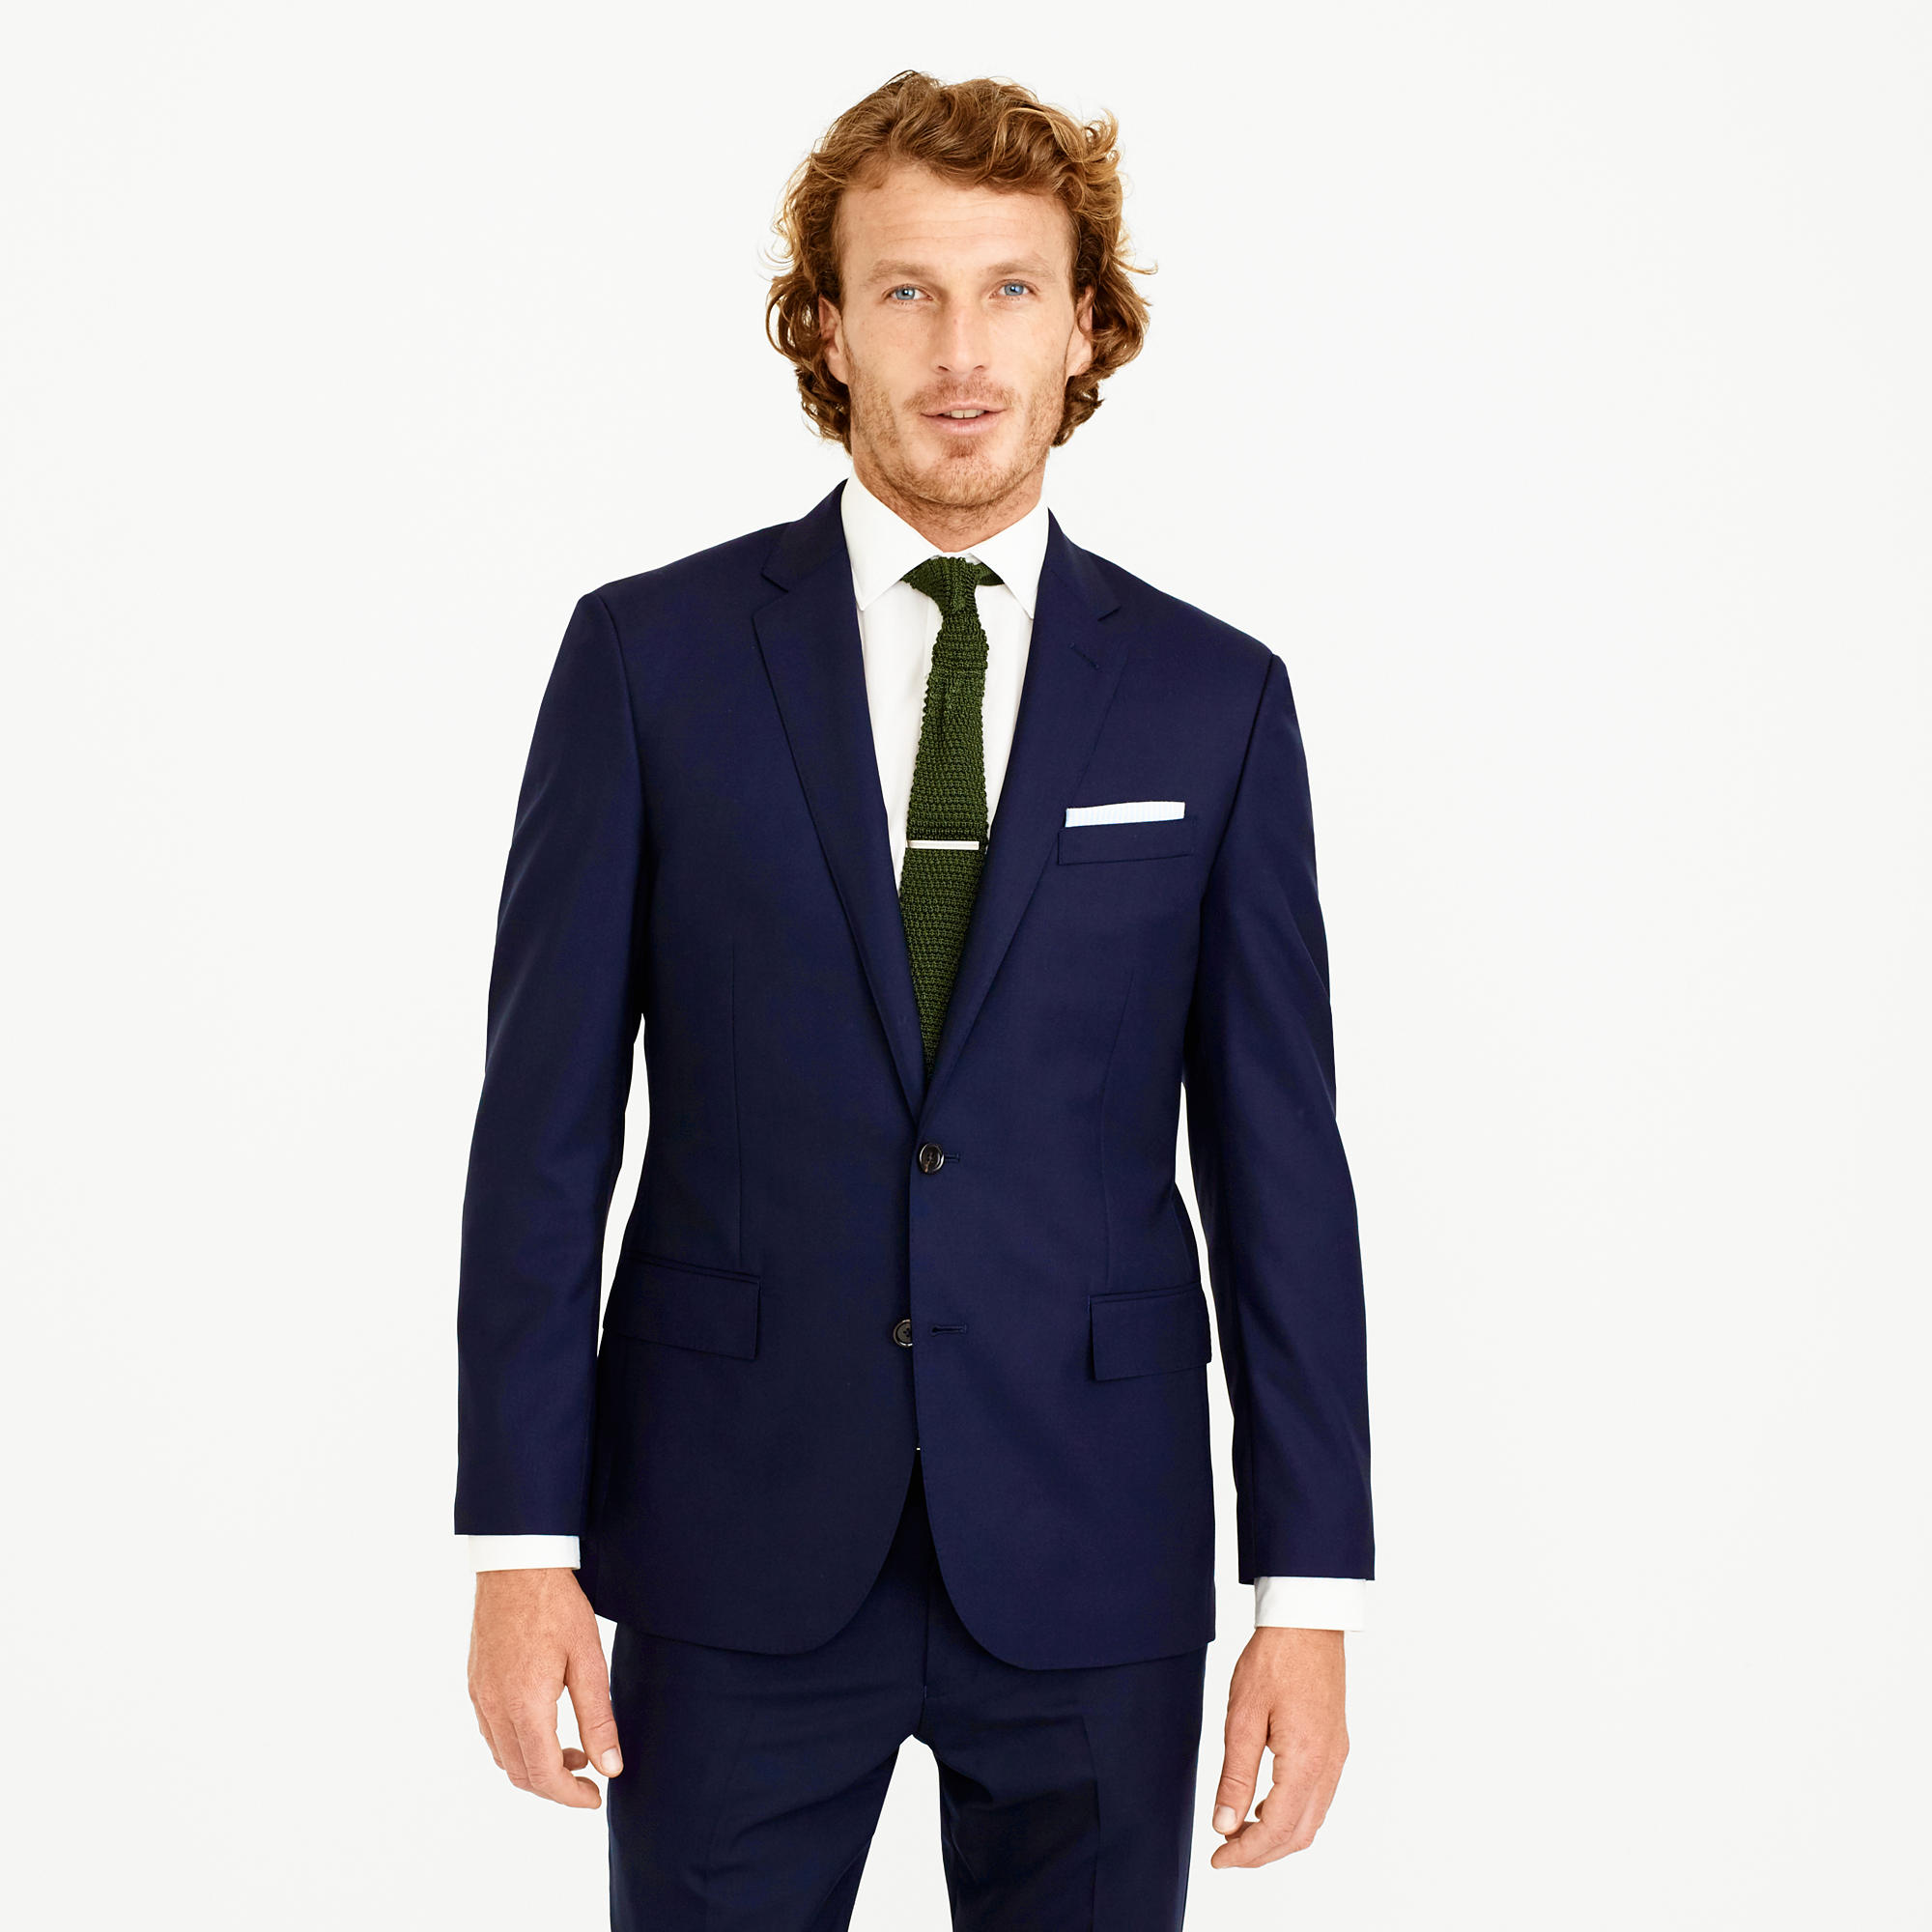 sam-c-perry-what-to-wear-when-you-have-nothing-to-wear-jcrew-suit.jpg